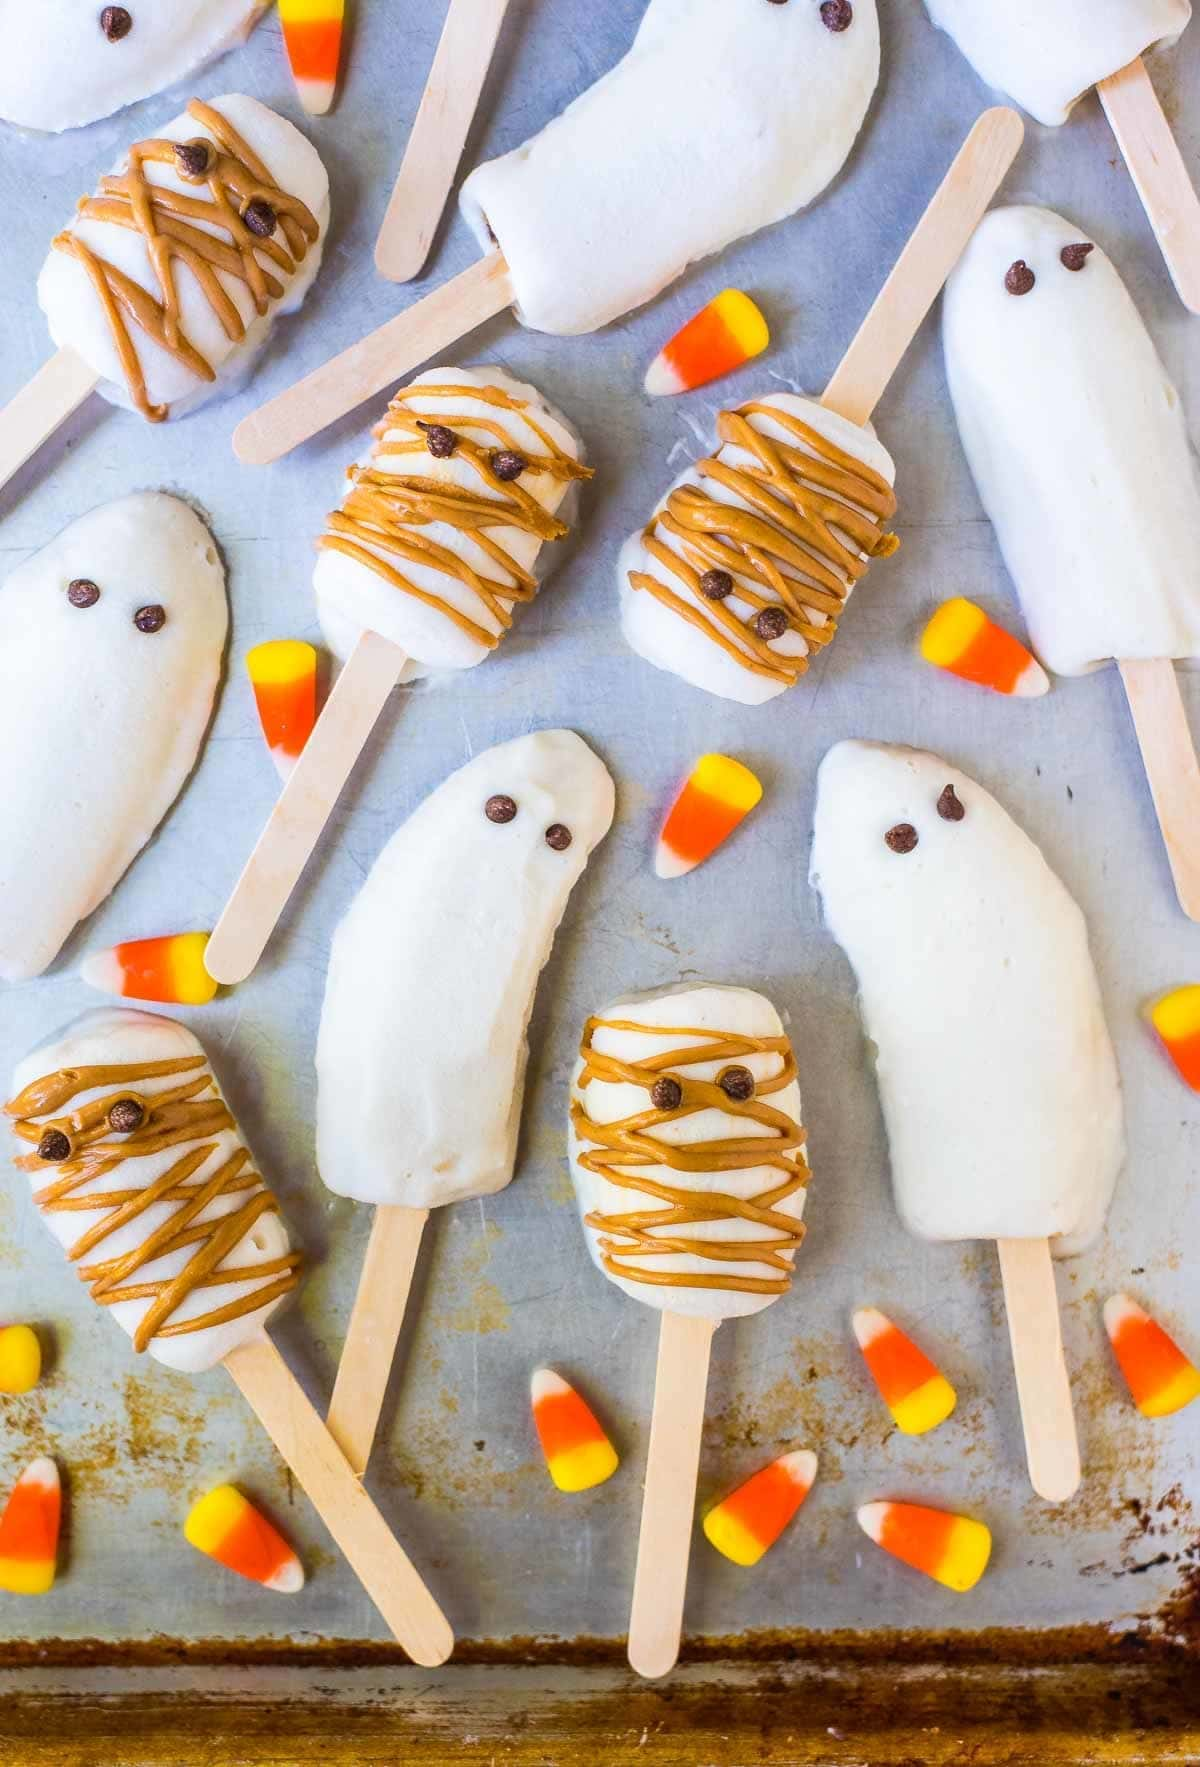 Easy BOO-NANA Banana Popsicle Ghosts and Mummies. SO CUTE! Great healthy Halloween snacks for kids and a fun Halloween activity. @wellplated